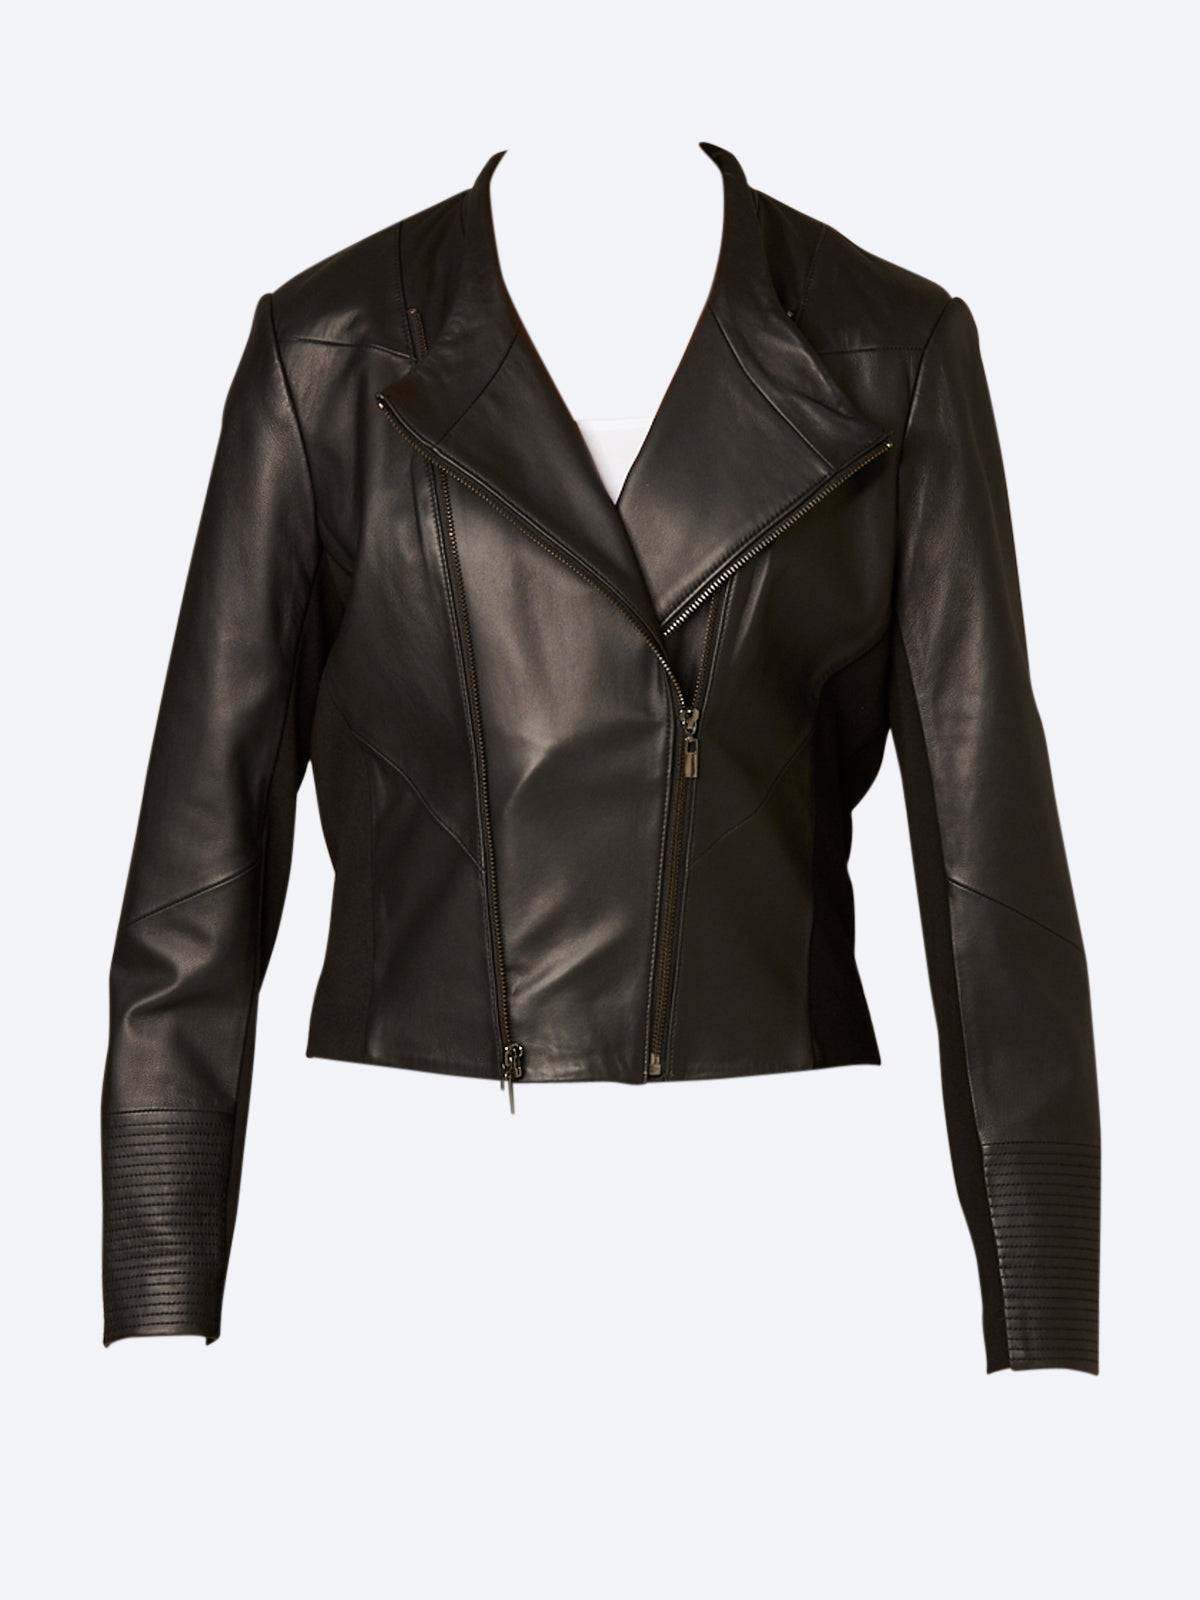 VERGE AVALON LEATHER JACKET